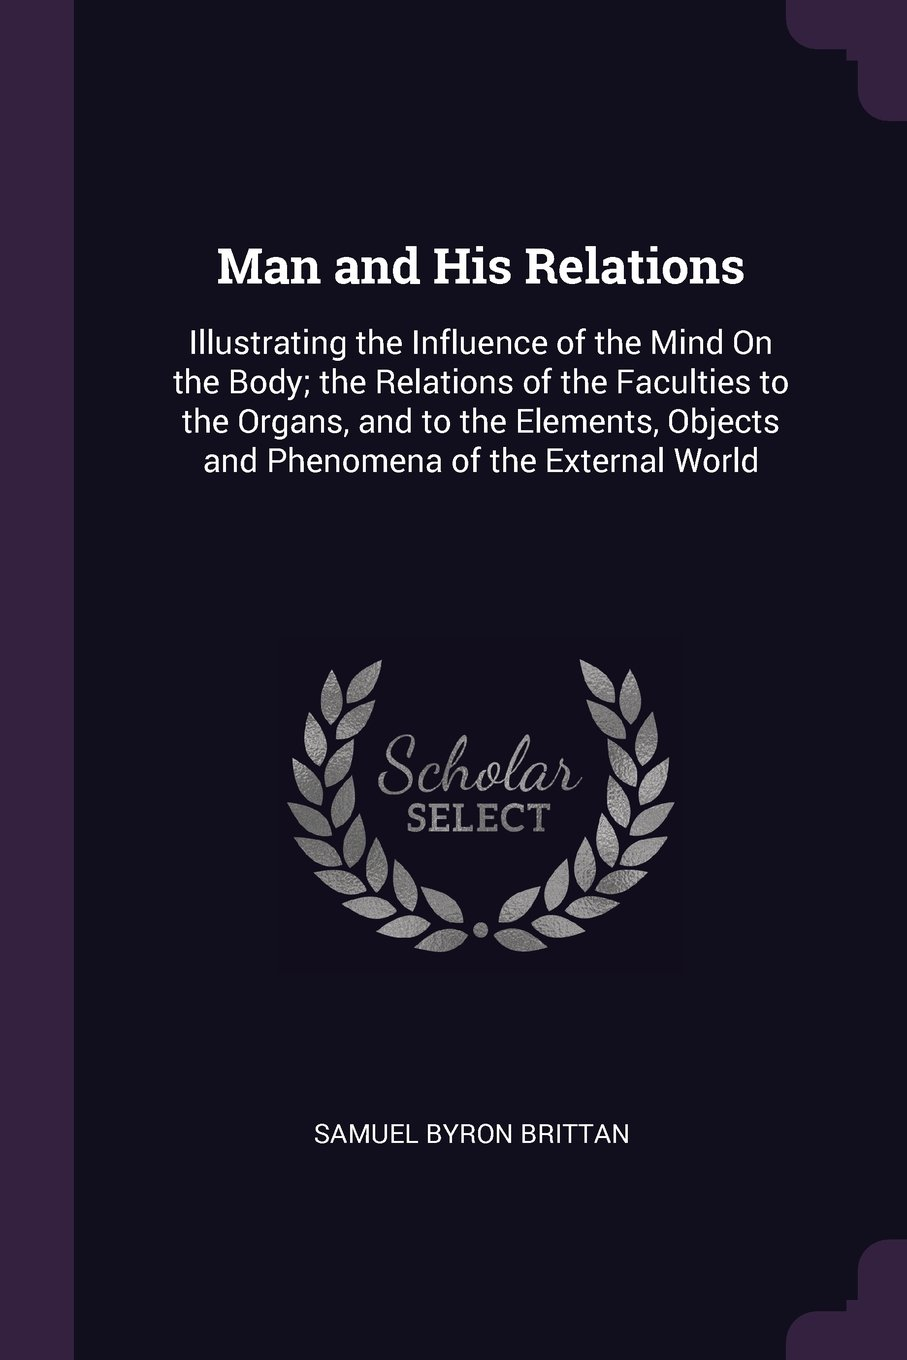 Man and His Relations: Illustrating the Influence of the Mind On the Body; the Relations of the Faculties to the Organs, and to the Elements, Objects and Phenomena of the External World PDF